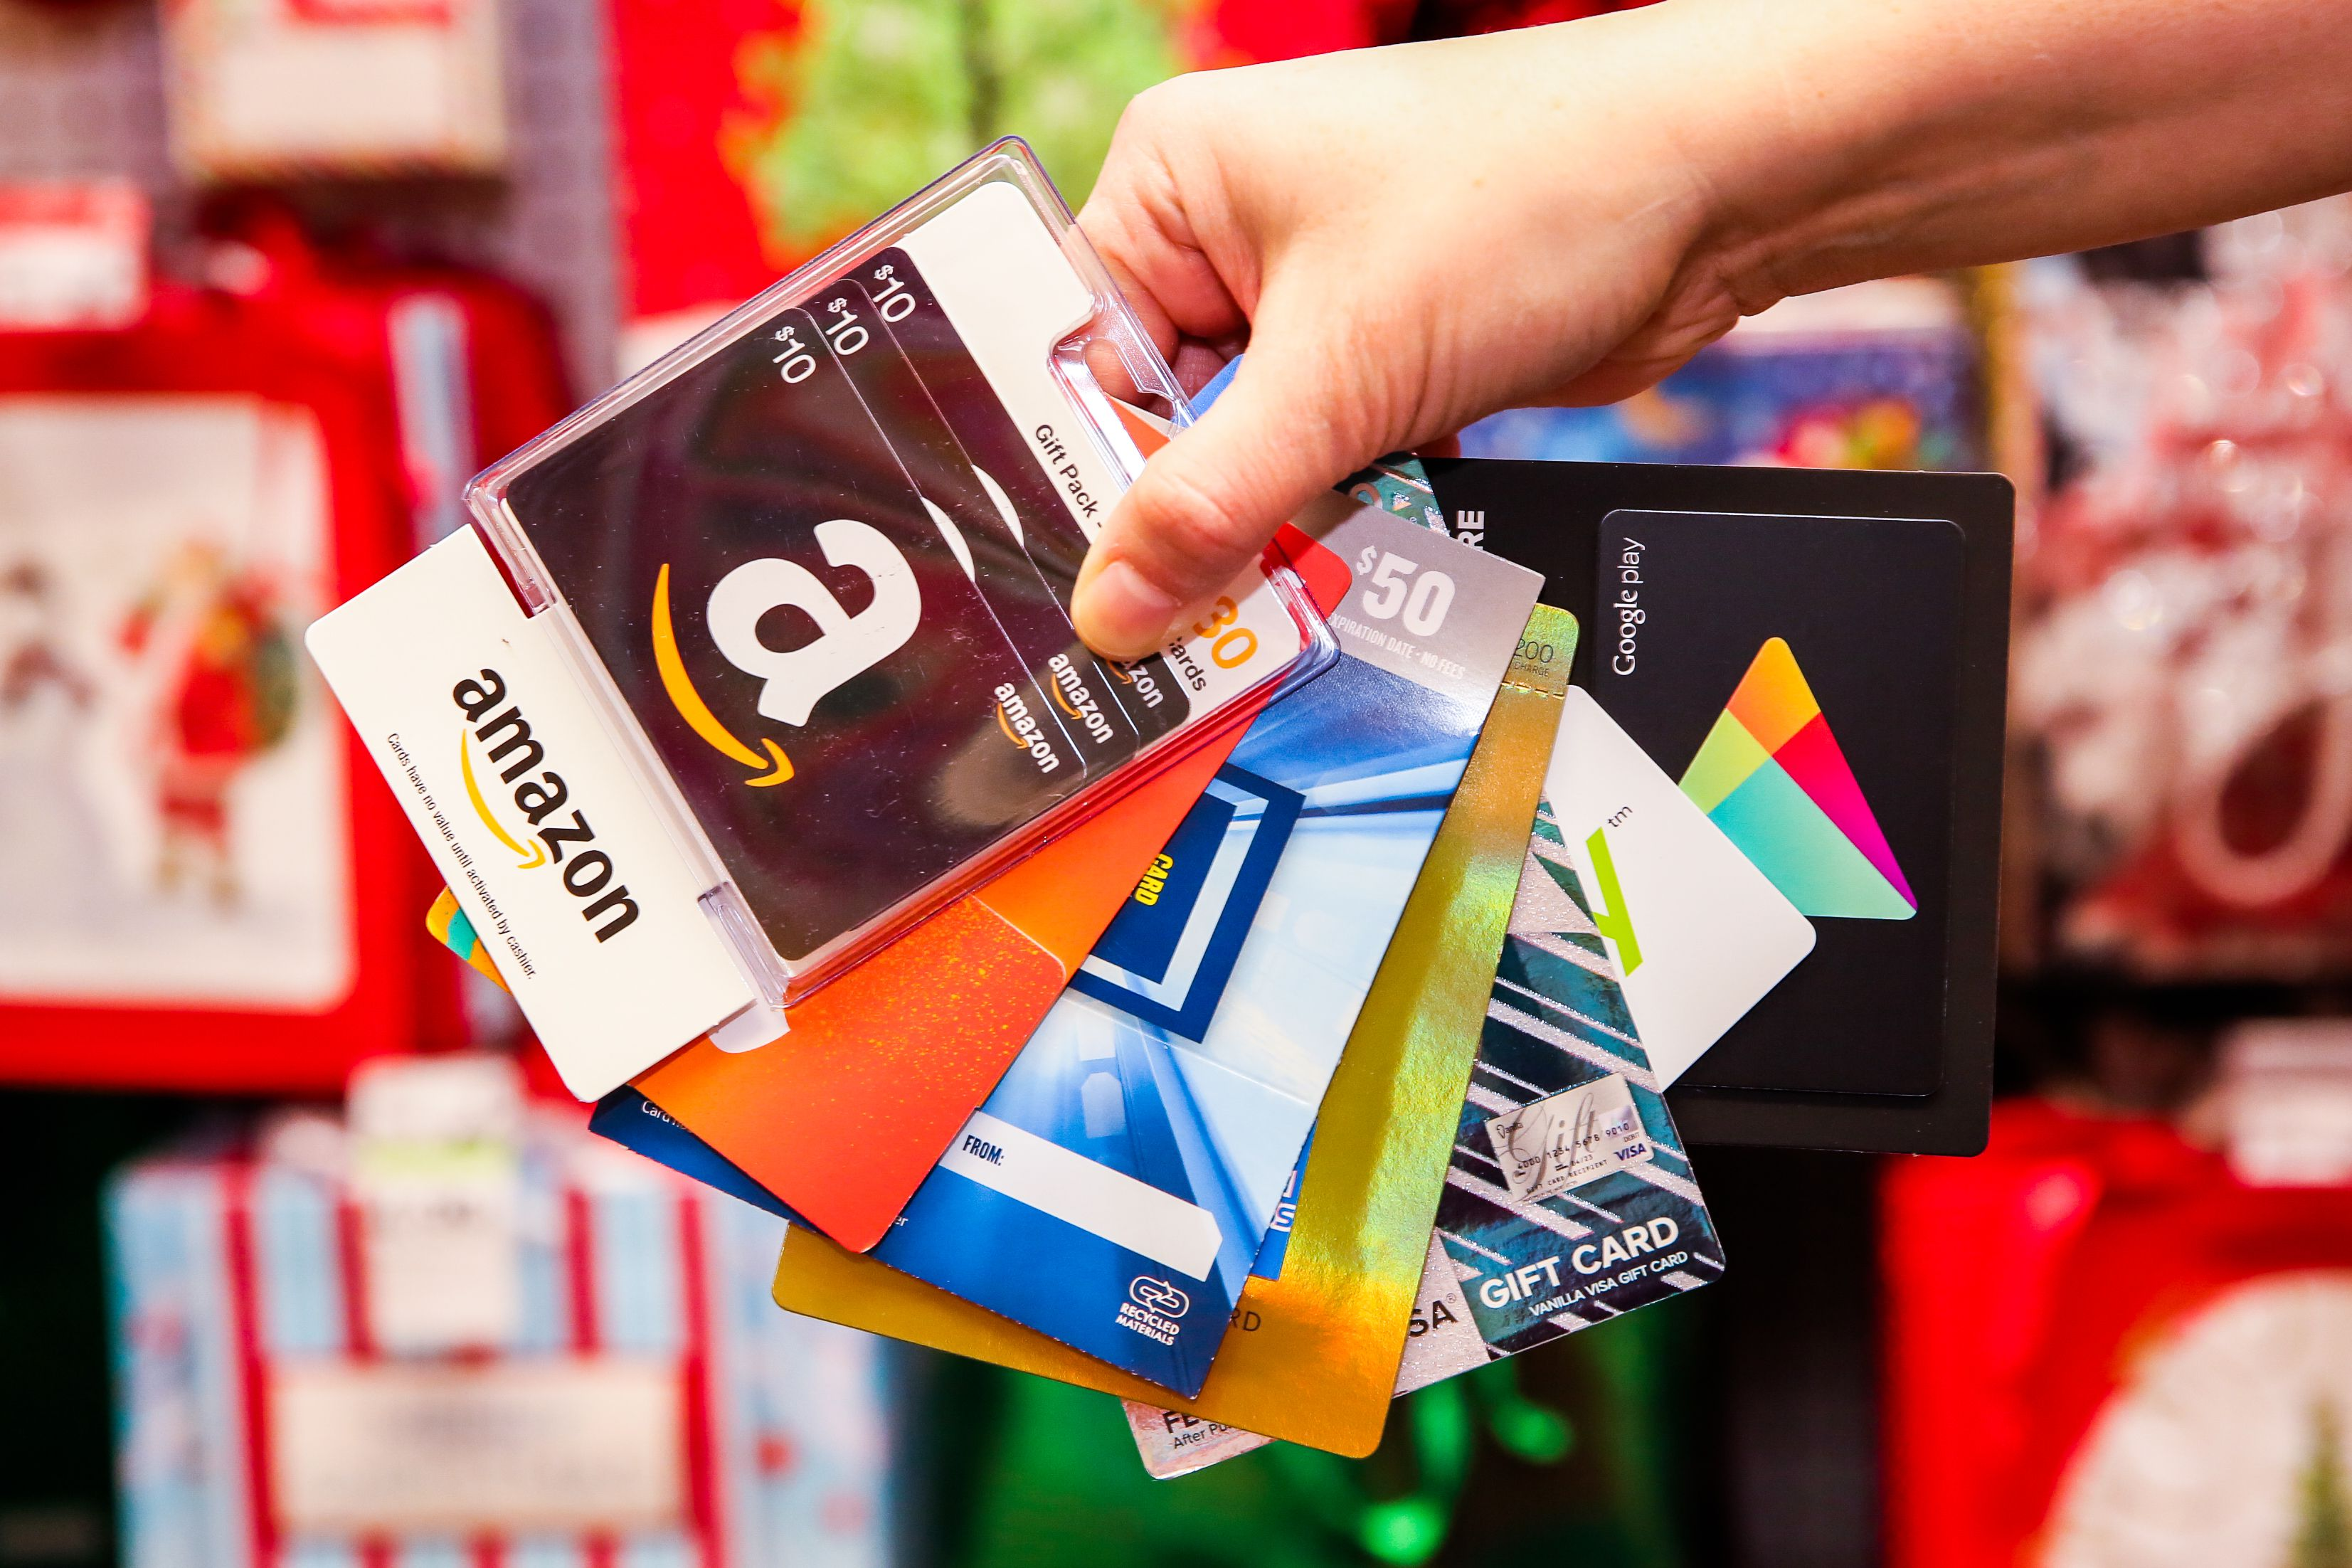 buy gift cards with cash app